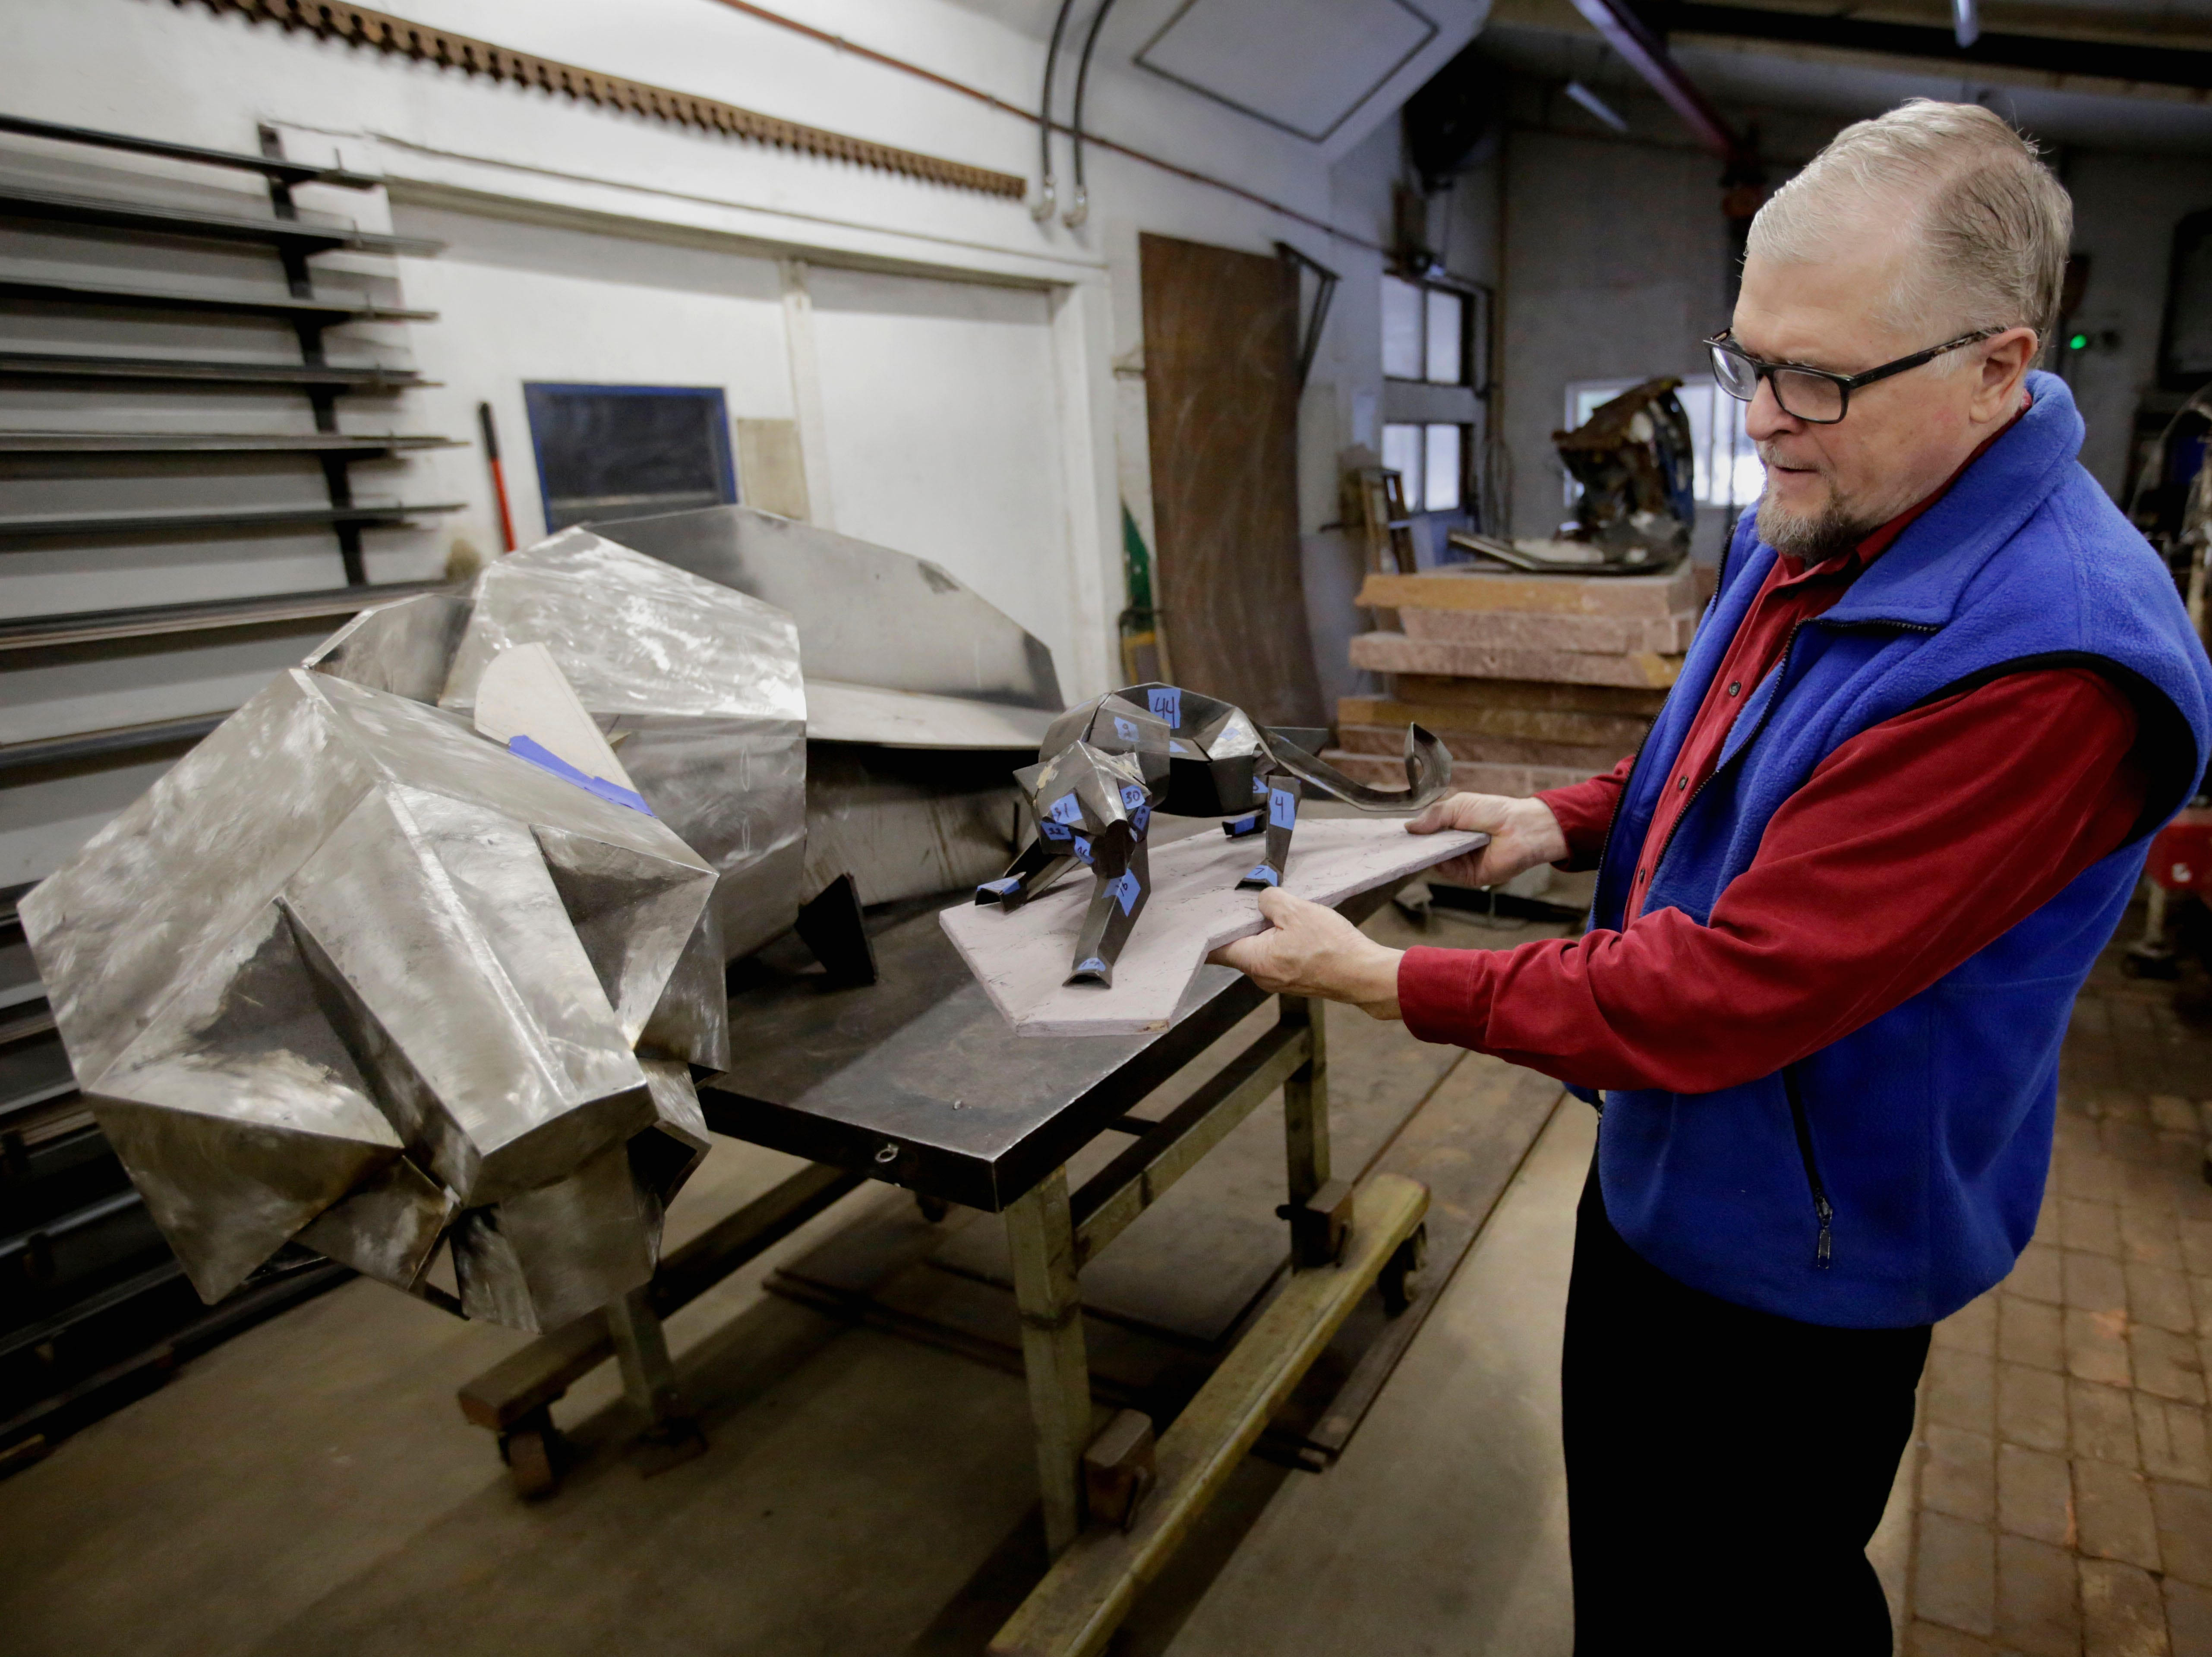 Boleslaw Kochanowski presents a maquette of the SPASH Panther sculpture on Wednesday, December 5, 2018, at his workshop in Junction City, Wis. The piece, once completed, will be installed at SPASH. Tork Mason/USA Today NETWORK-Wisconsin